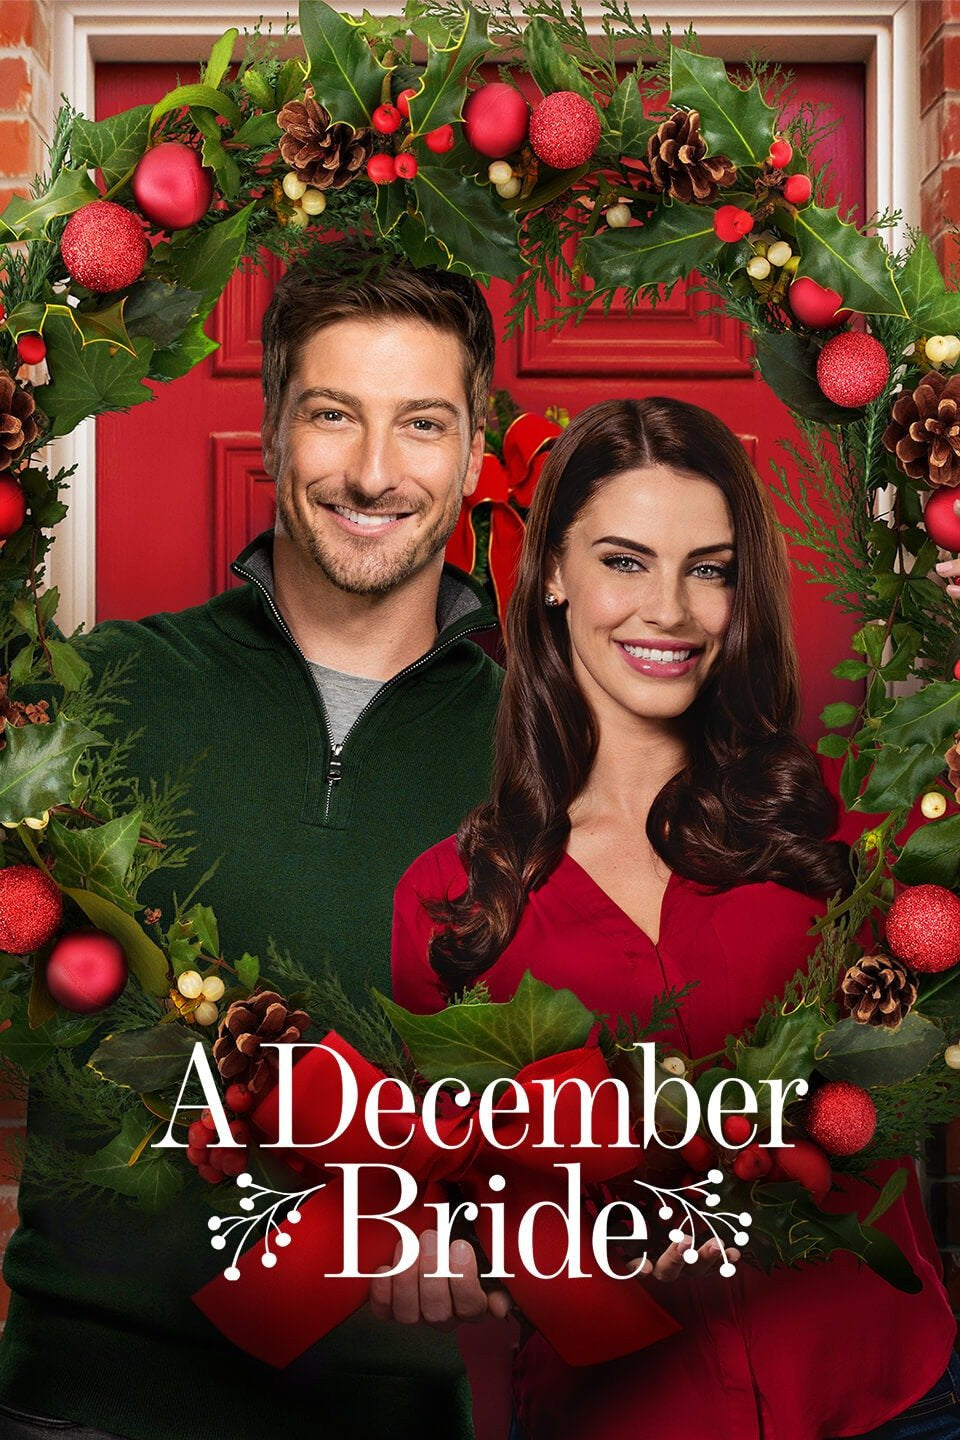 A December Bride Dvd (2016) Rarefliks.com